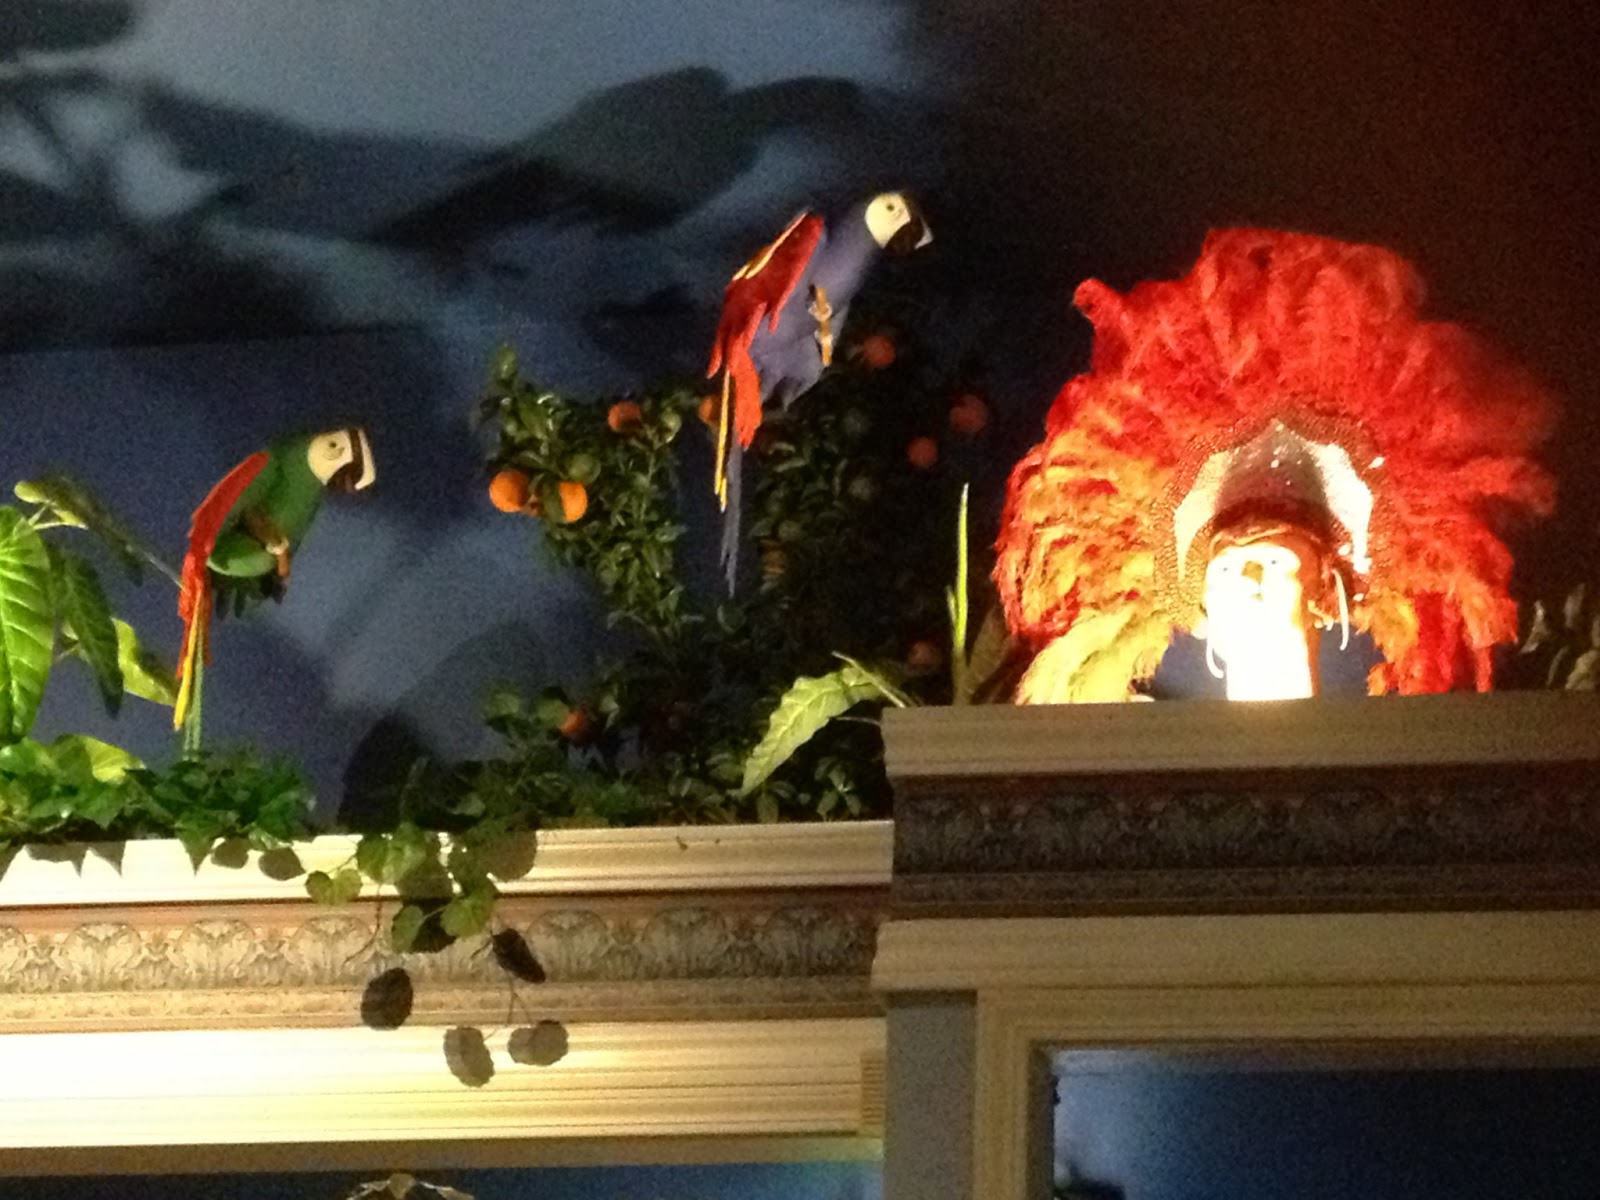 More restaurant decorations and ambiance: A couple parrots and a carnival headdress